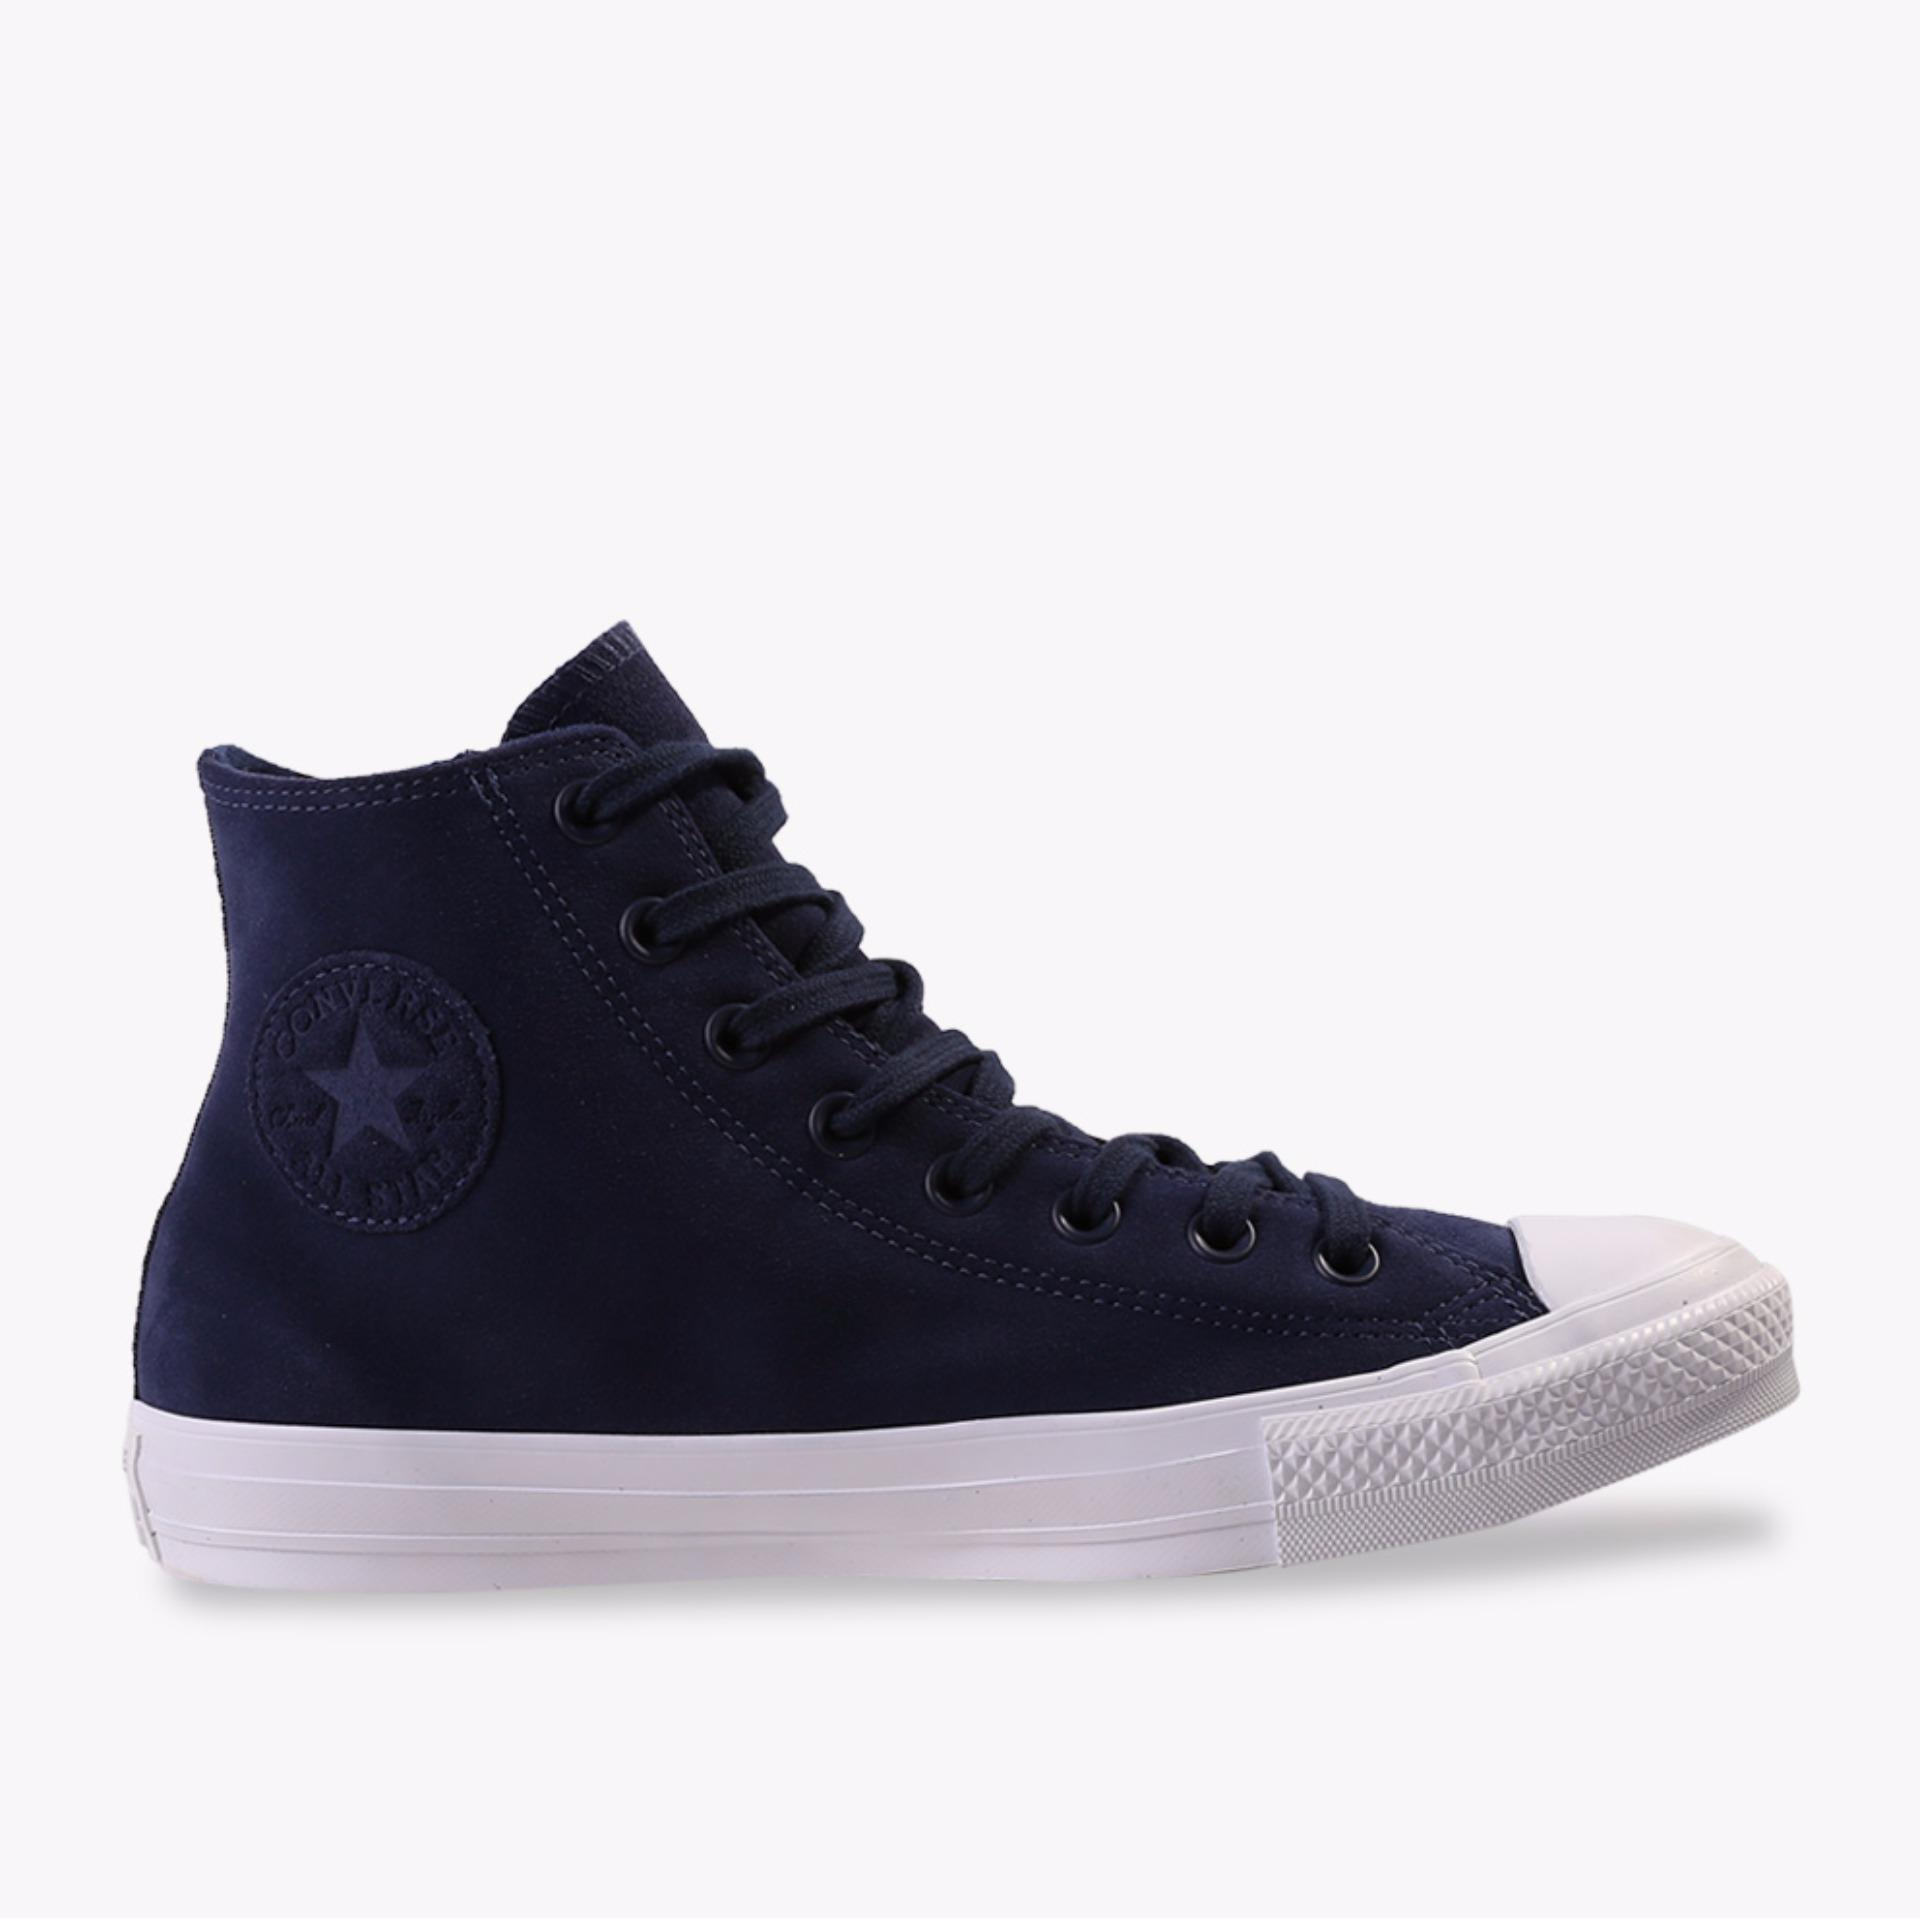 Beli Converse Chuck Taylor All Star Hi Men S Sneakers Shoes Navy Converse Murah